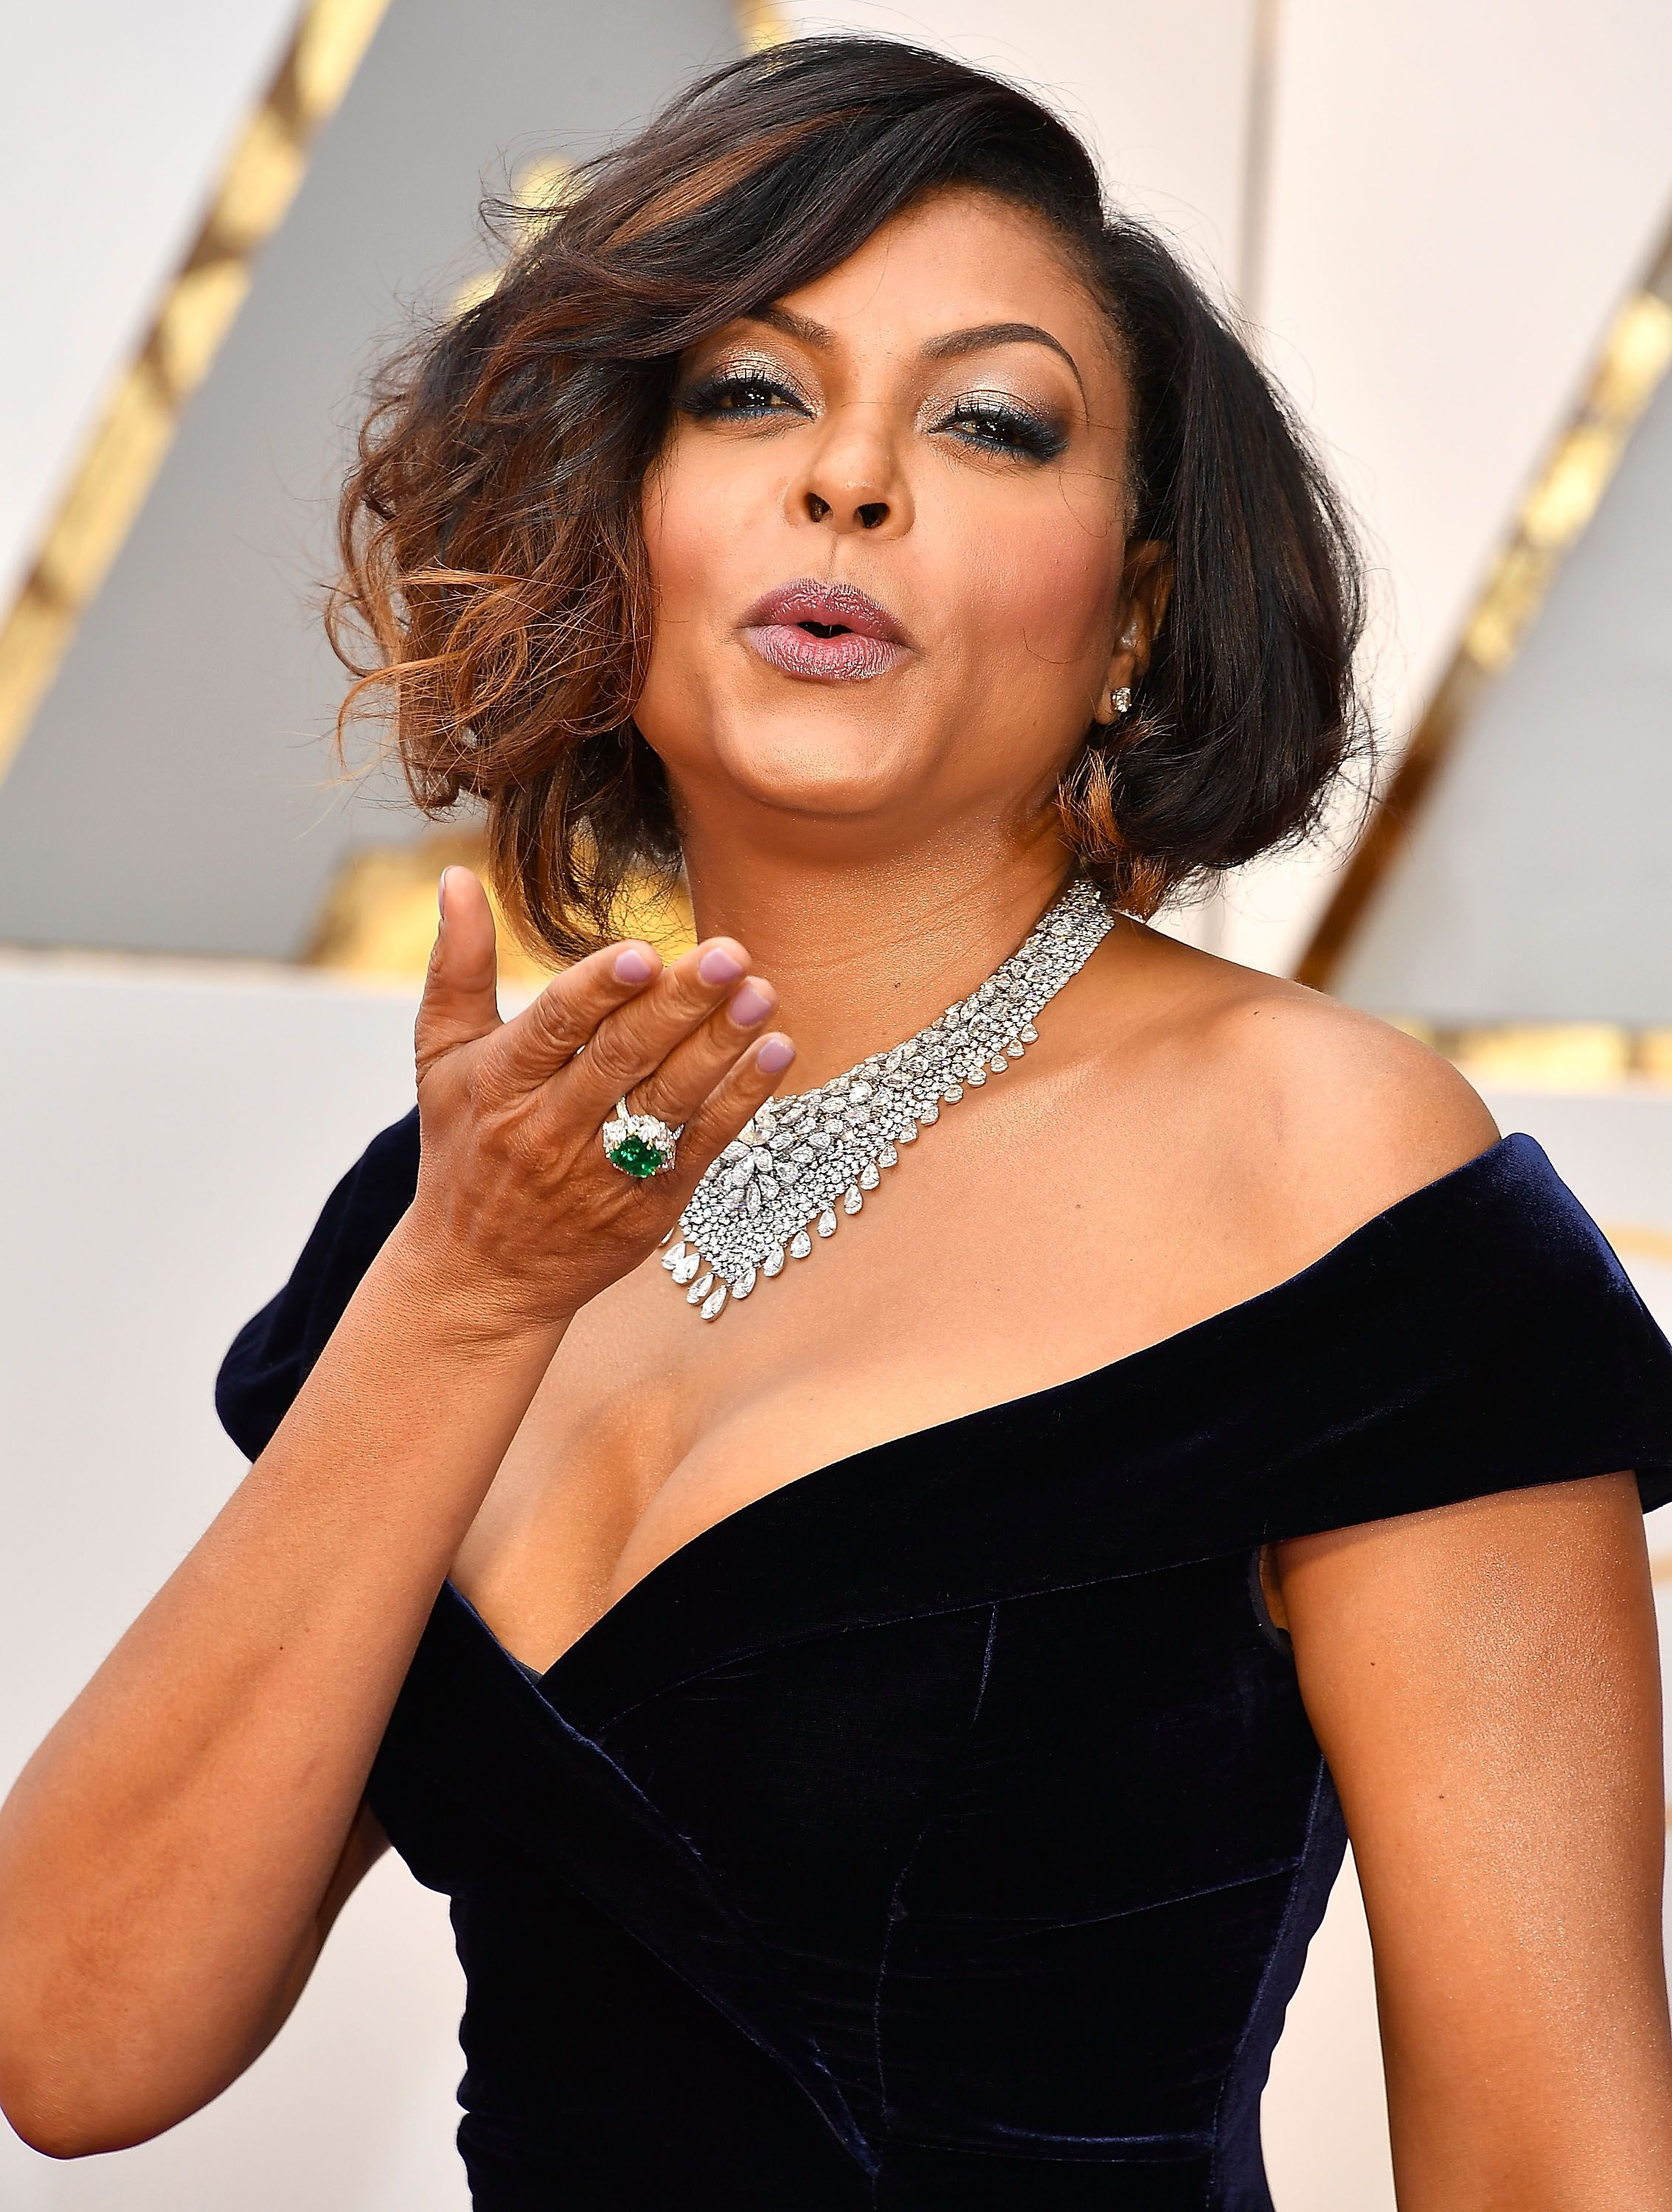 Taraji P. Henson during the 89th Annual Academy Awards at Hollywood & Highland Center on February 26, 2017 in Hollywood, California. | Source: Getty Images